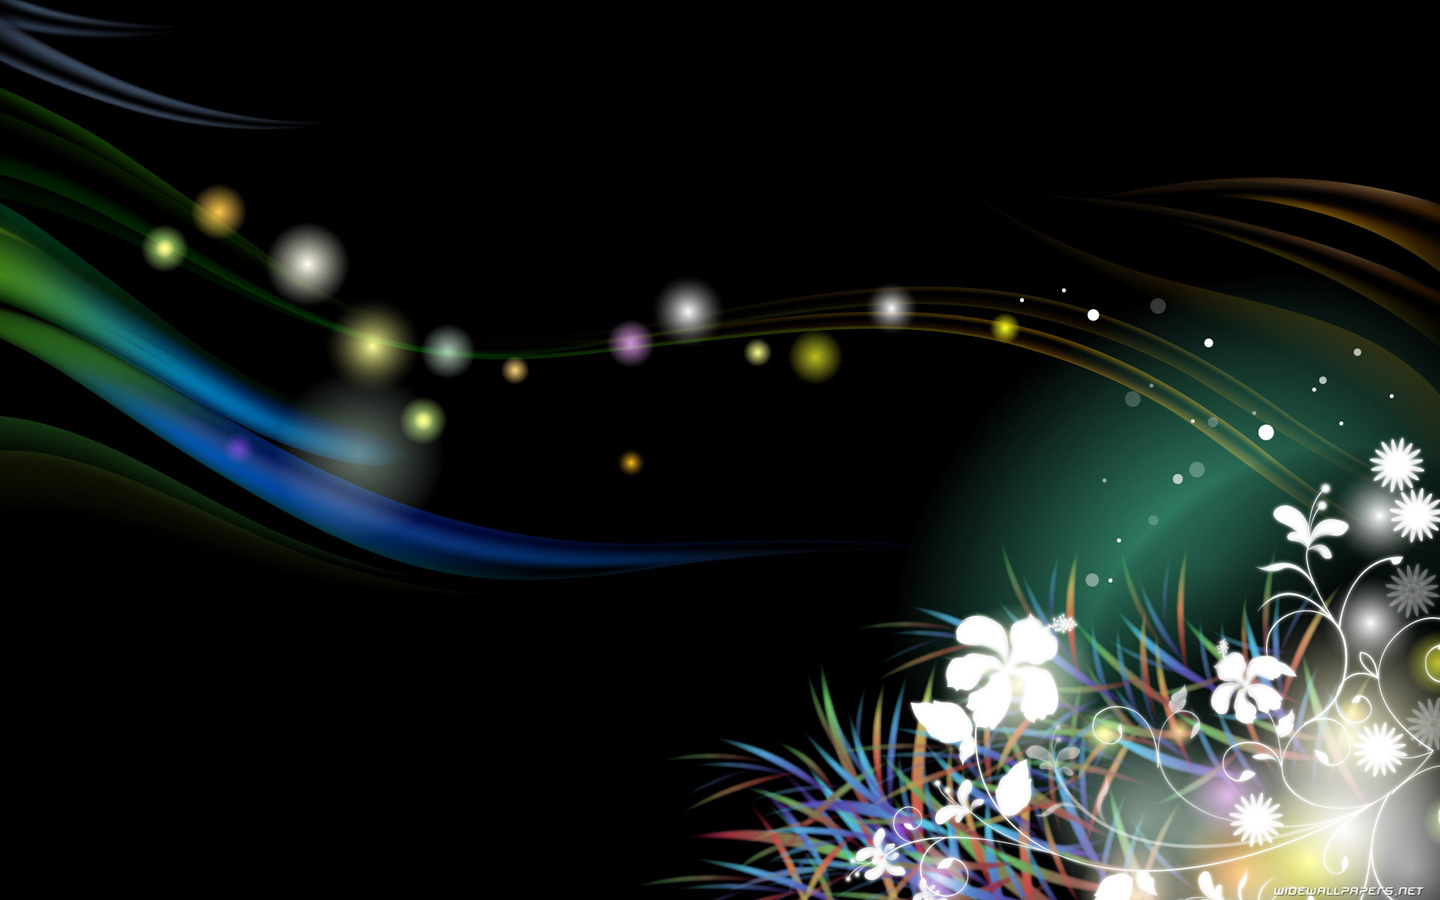 http://4.bp.blogspot.com/_enVLP57PrXw/TGL6kmipG5I/AAAAAAAAC4o/aFjQkHntXZU/s1600/dark-abstract-wide-wallpaper-1440x900-032.jpg